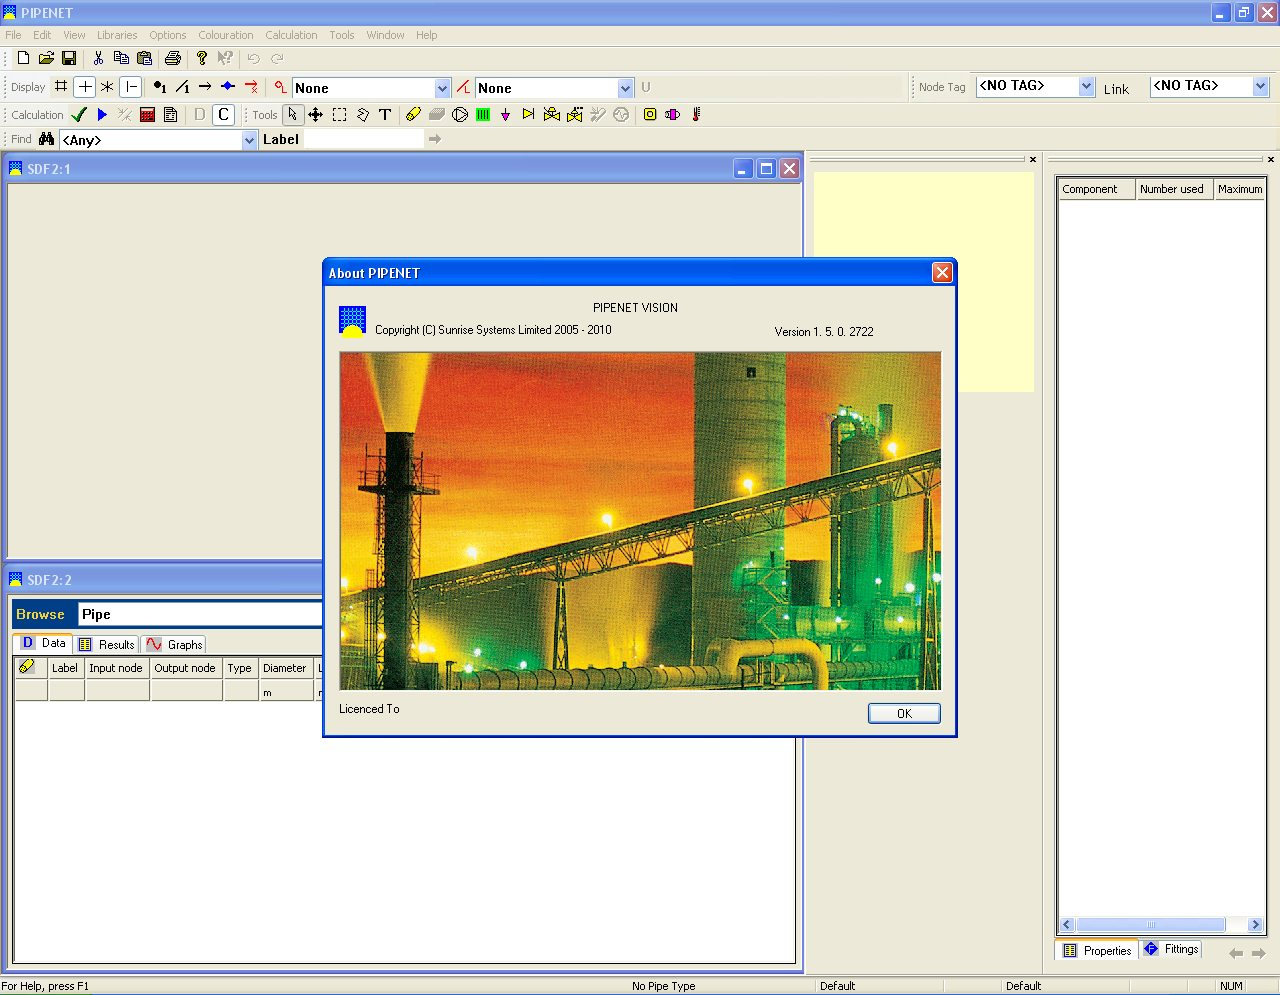 Sunrise PIPENET Vision 1.5.0.2722